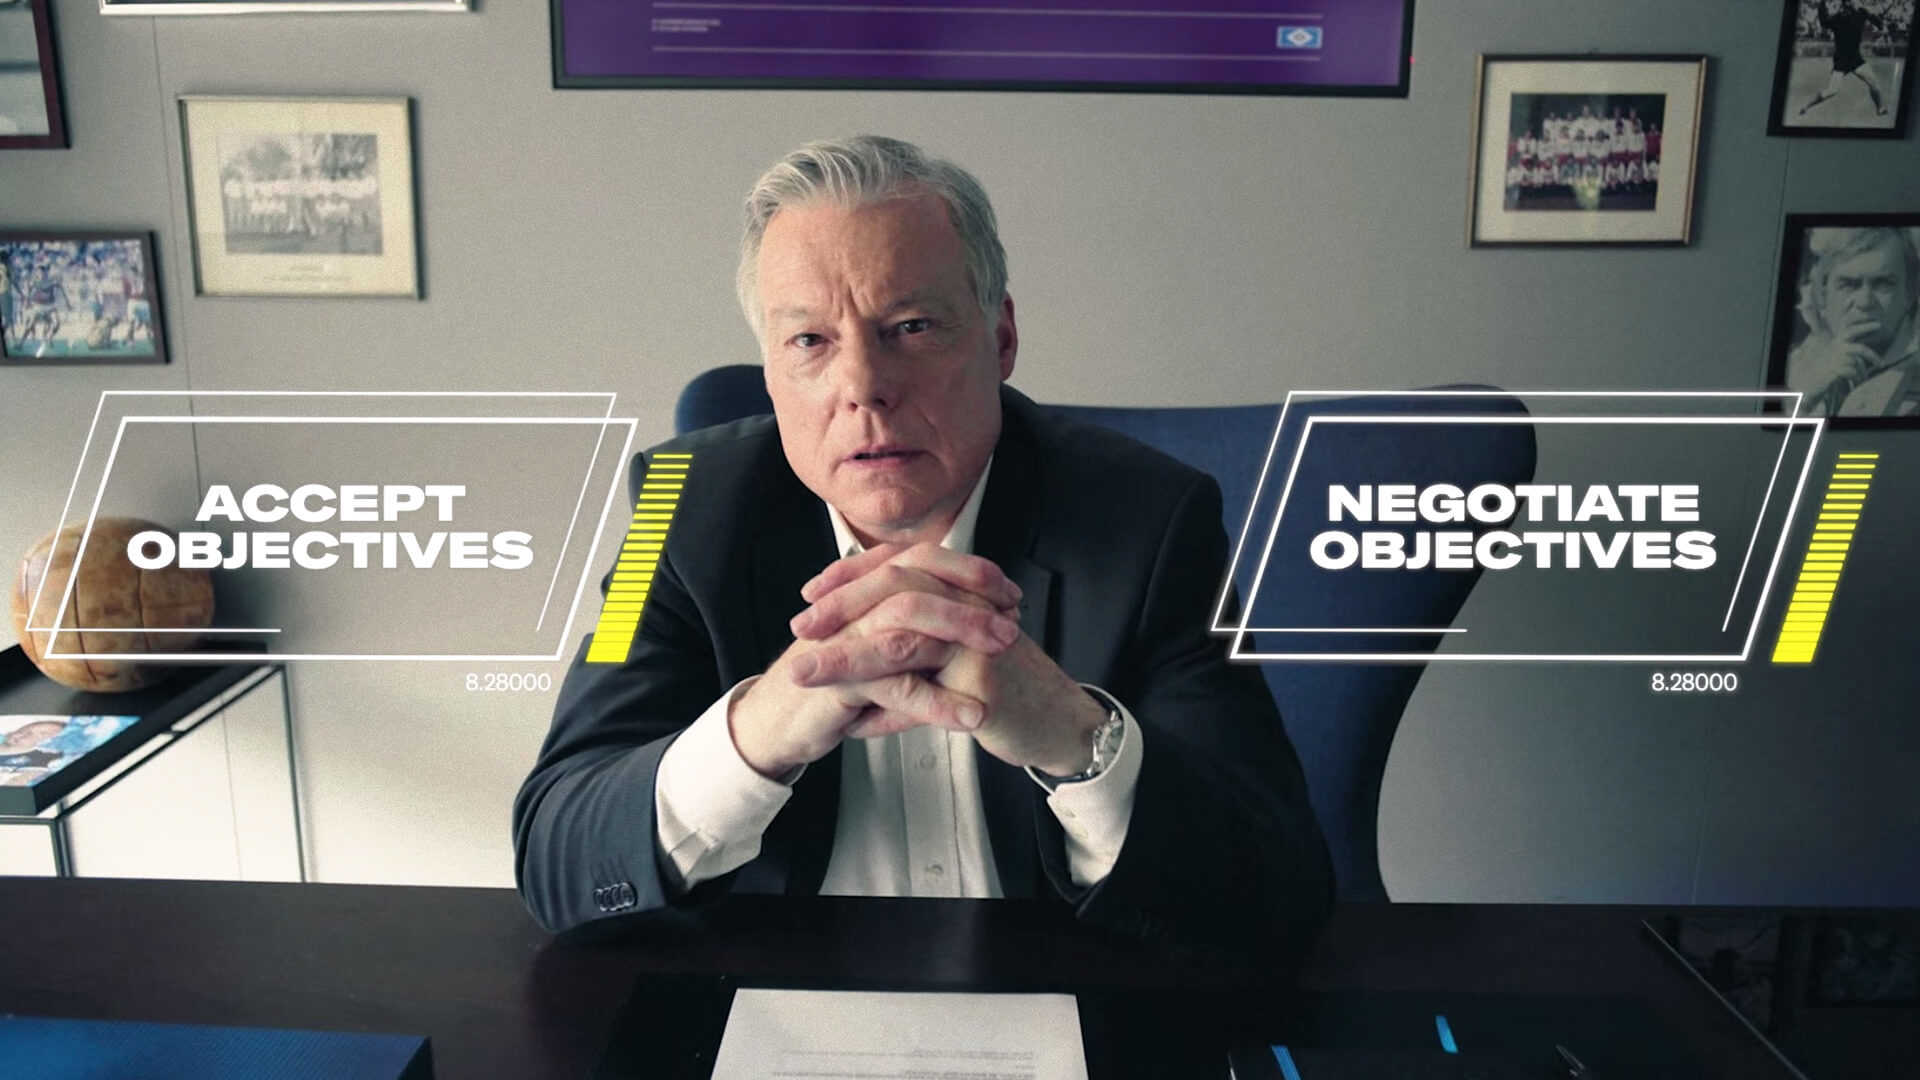 A still from a interactive video for Sega's Football Manager. A man sits behind the desk looking into the camera. To the left and right of him are two interactive hotspots acting as decisions to be made in the interactive video.